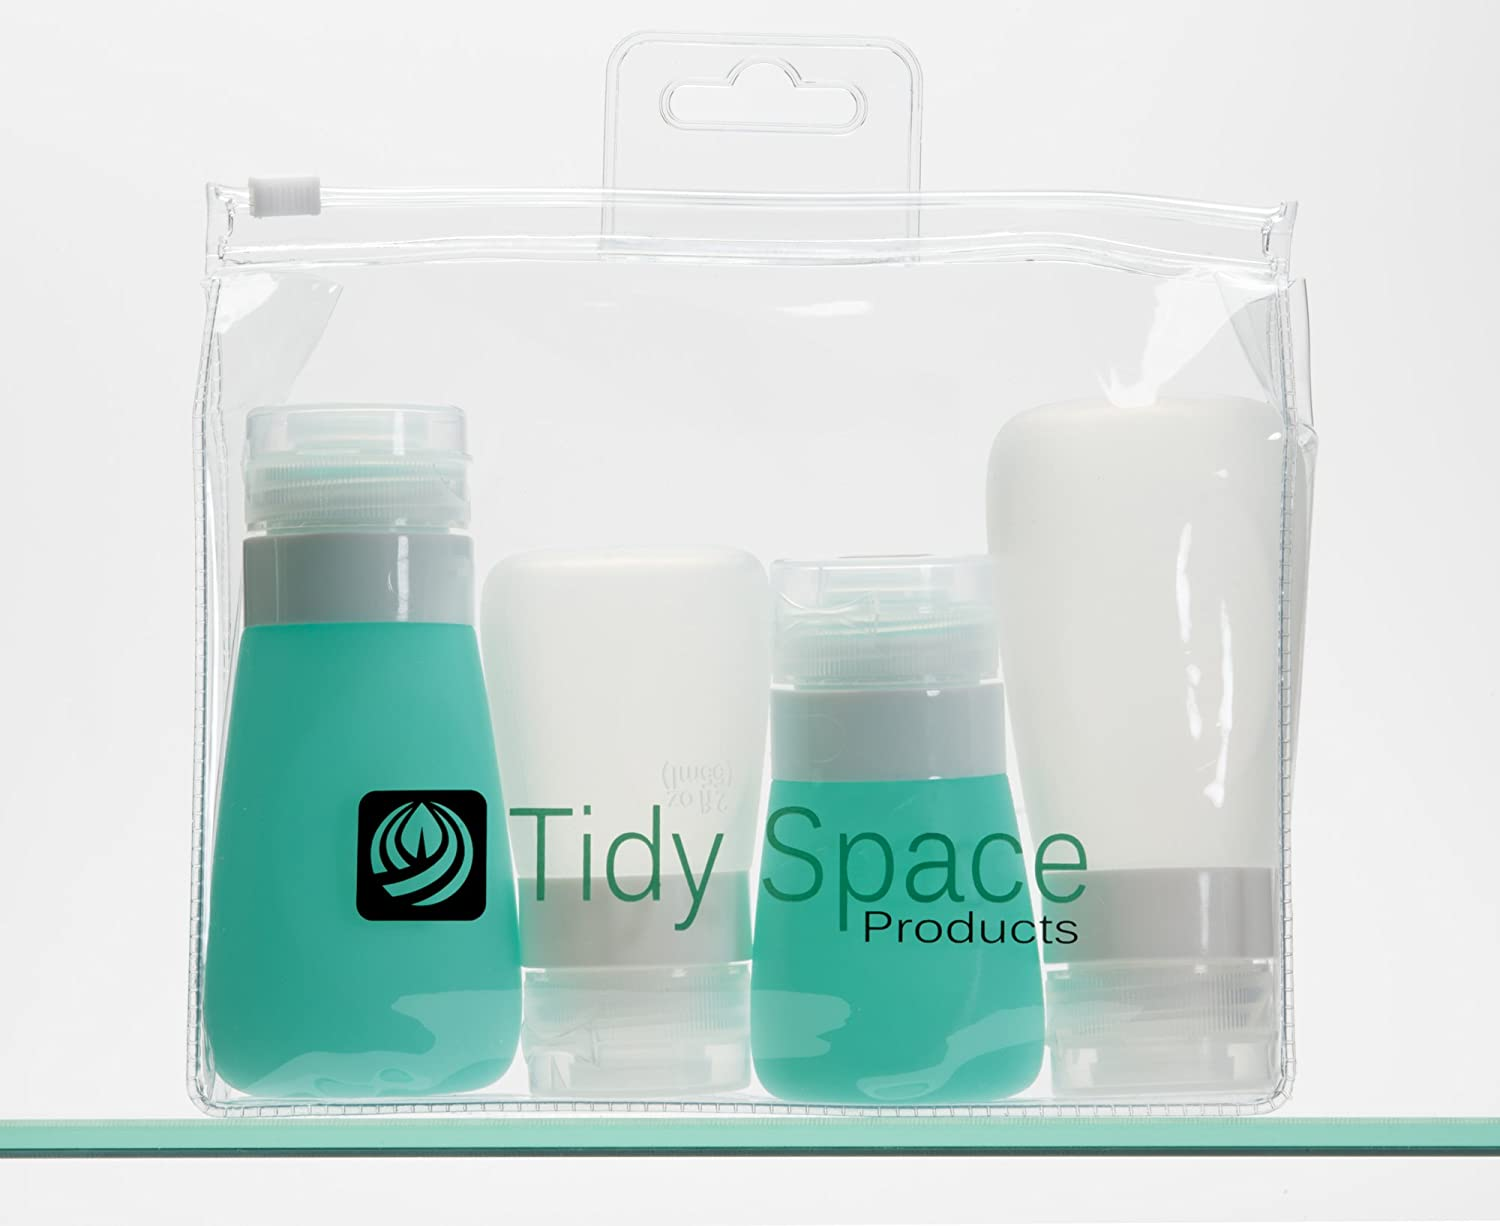 Travel Bottles For Toiletries Leak Proof Silicone Matador Flatpak Toiletry Bottle 1 Pack Containers In Complimentary Tsa Approved Bag Airplane Size 2 And 3 Oz Clear